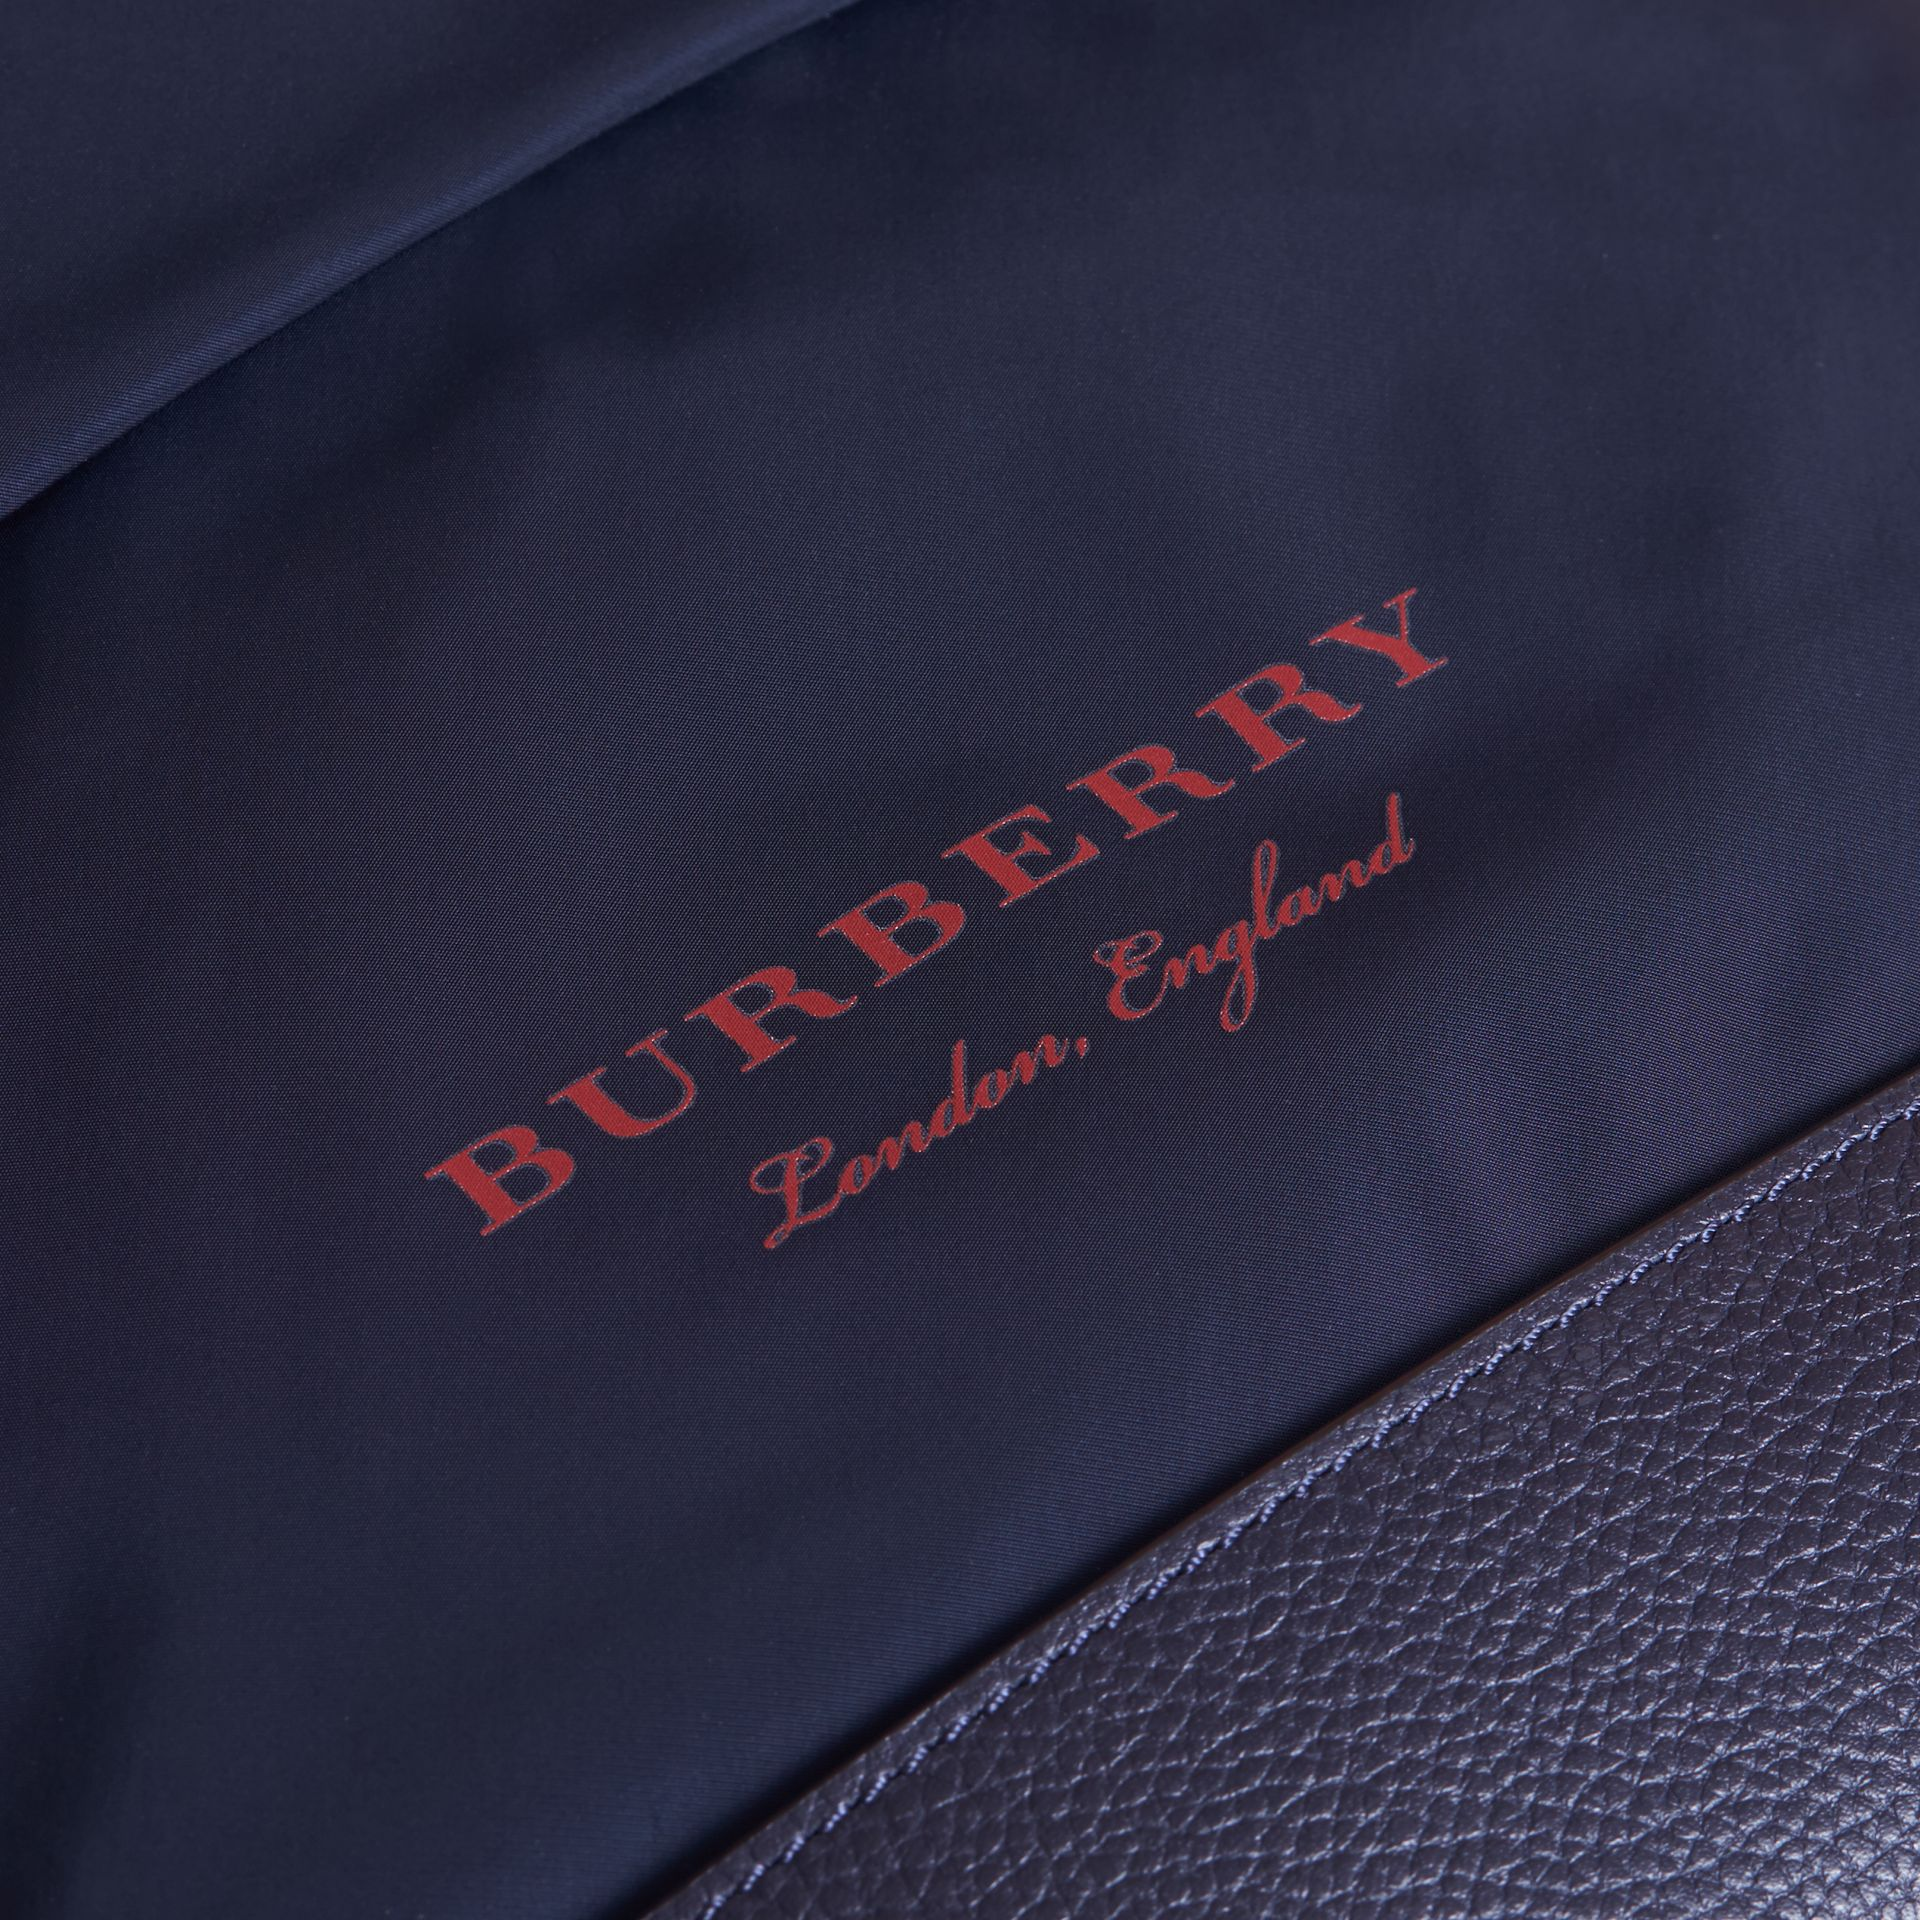 Leather Trim Lightweight Backpack in Ink | Burberry Singapore - gallery image 2